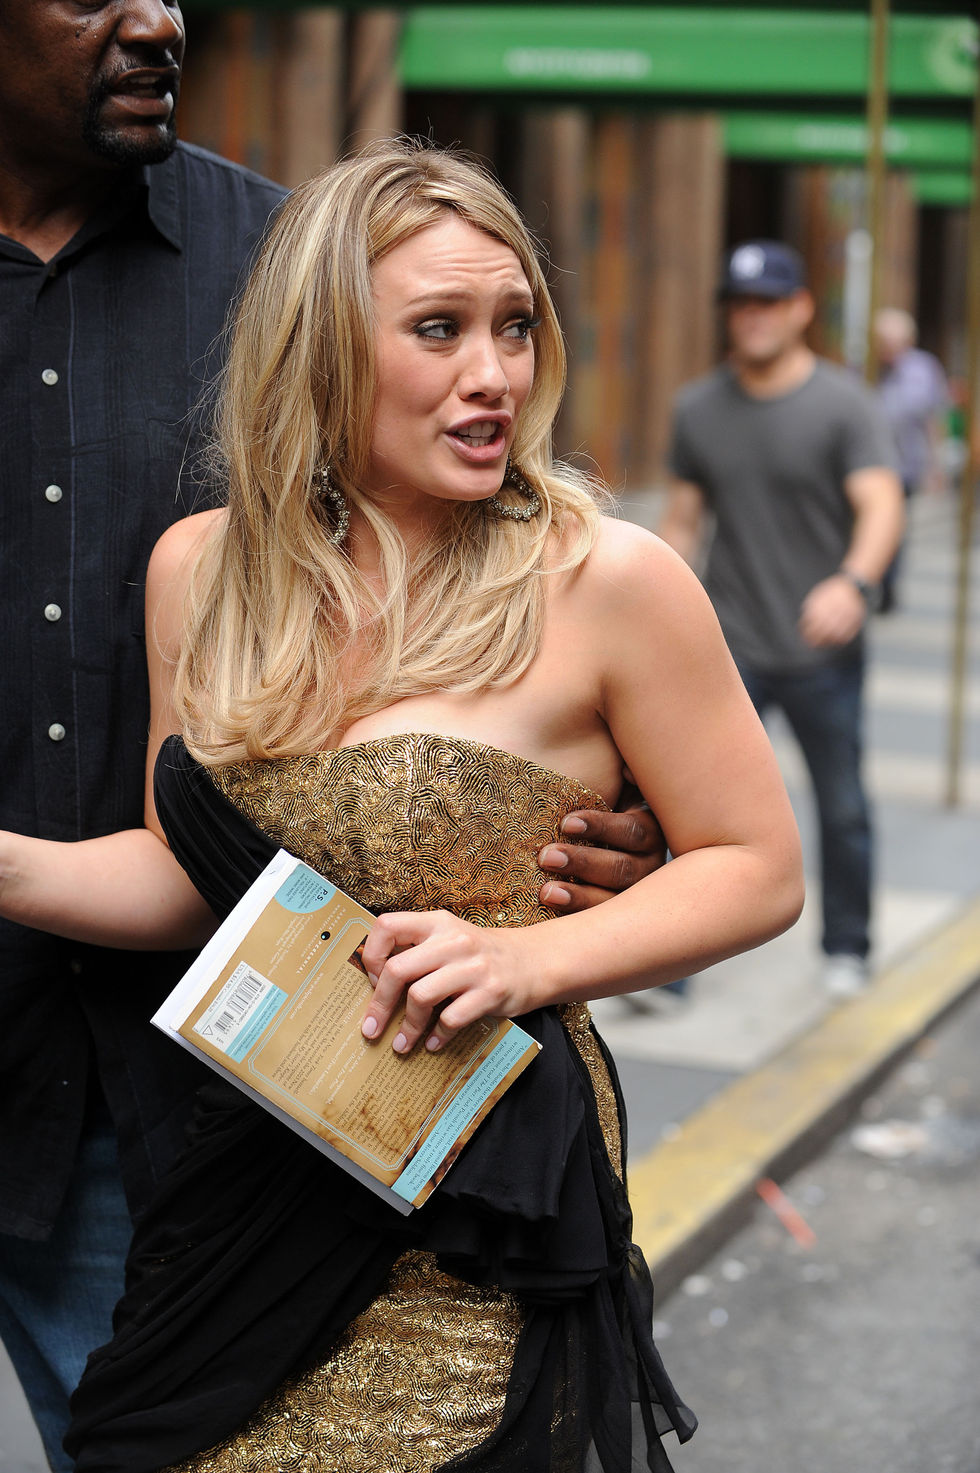 hilary-duff-on-gossip-girl-set-in-new-york-01